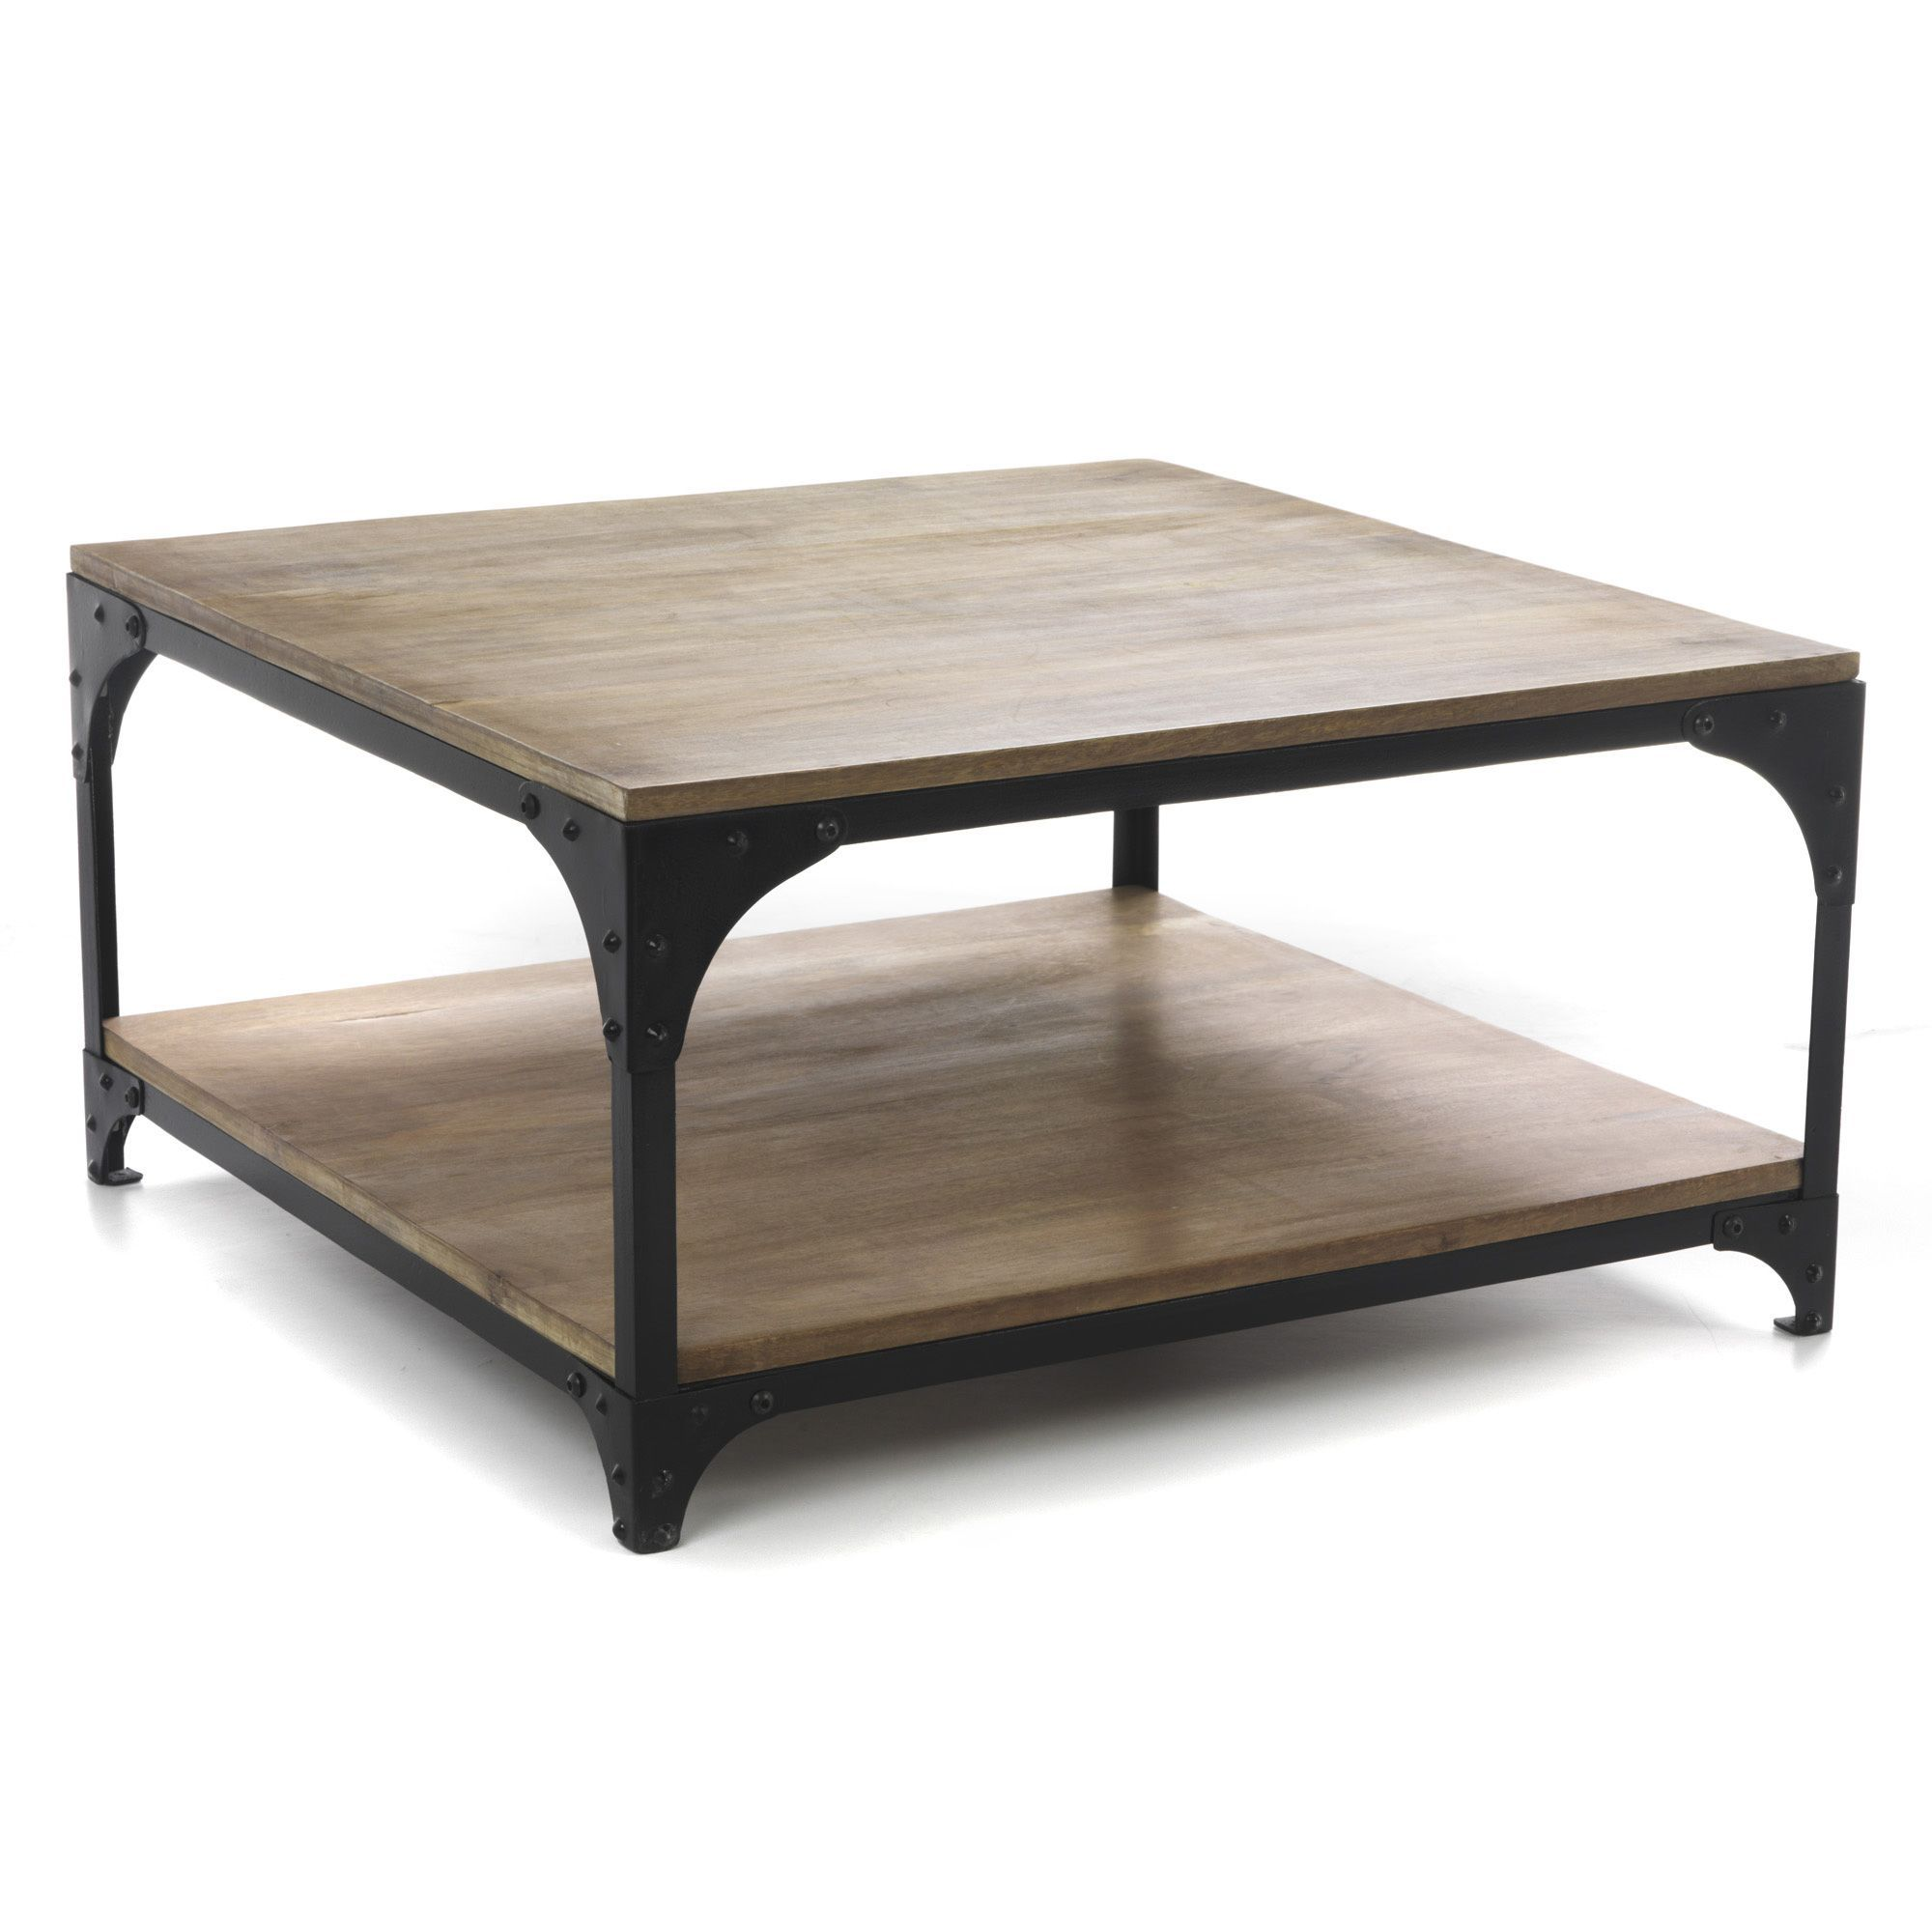 table basse carr e au style industriel naturel new ately les tables basses tables basses. Black Bedroom Furniture Sets. Home Design Ideas